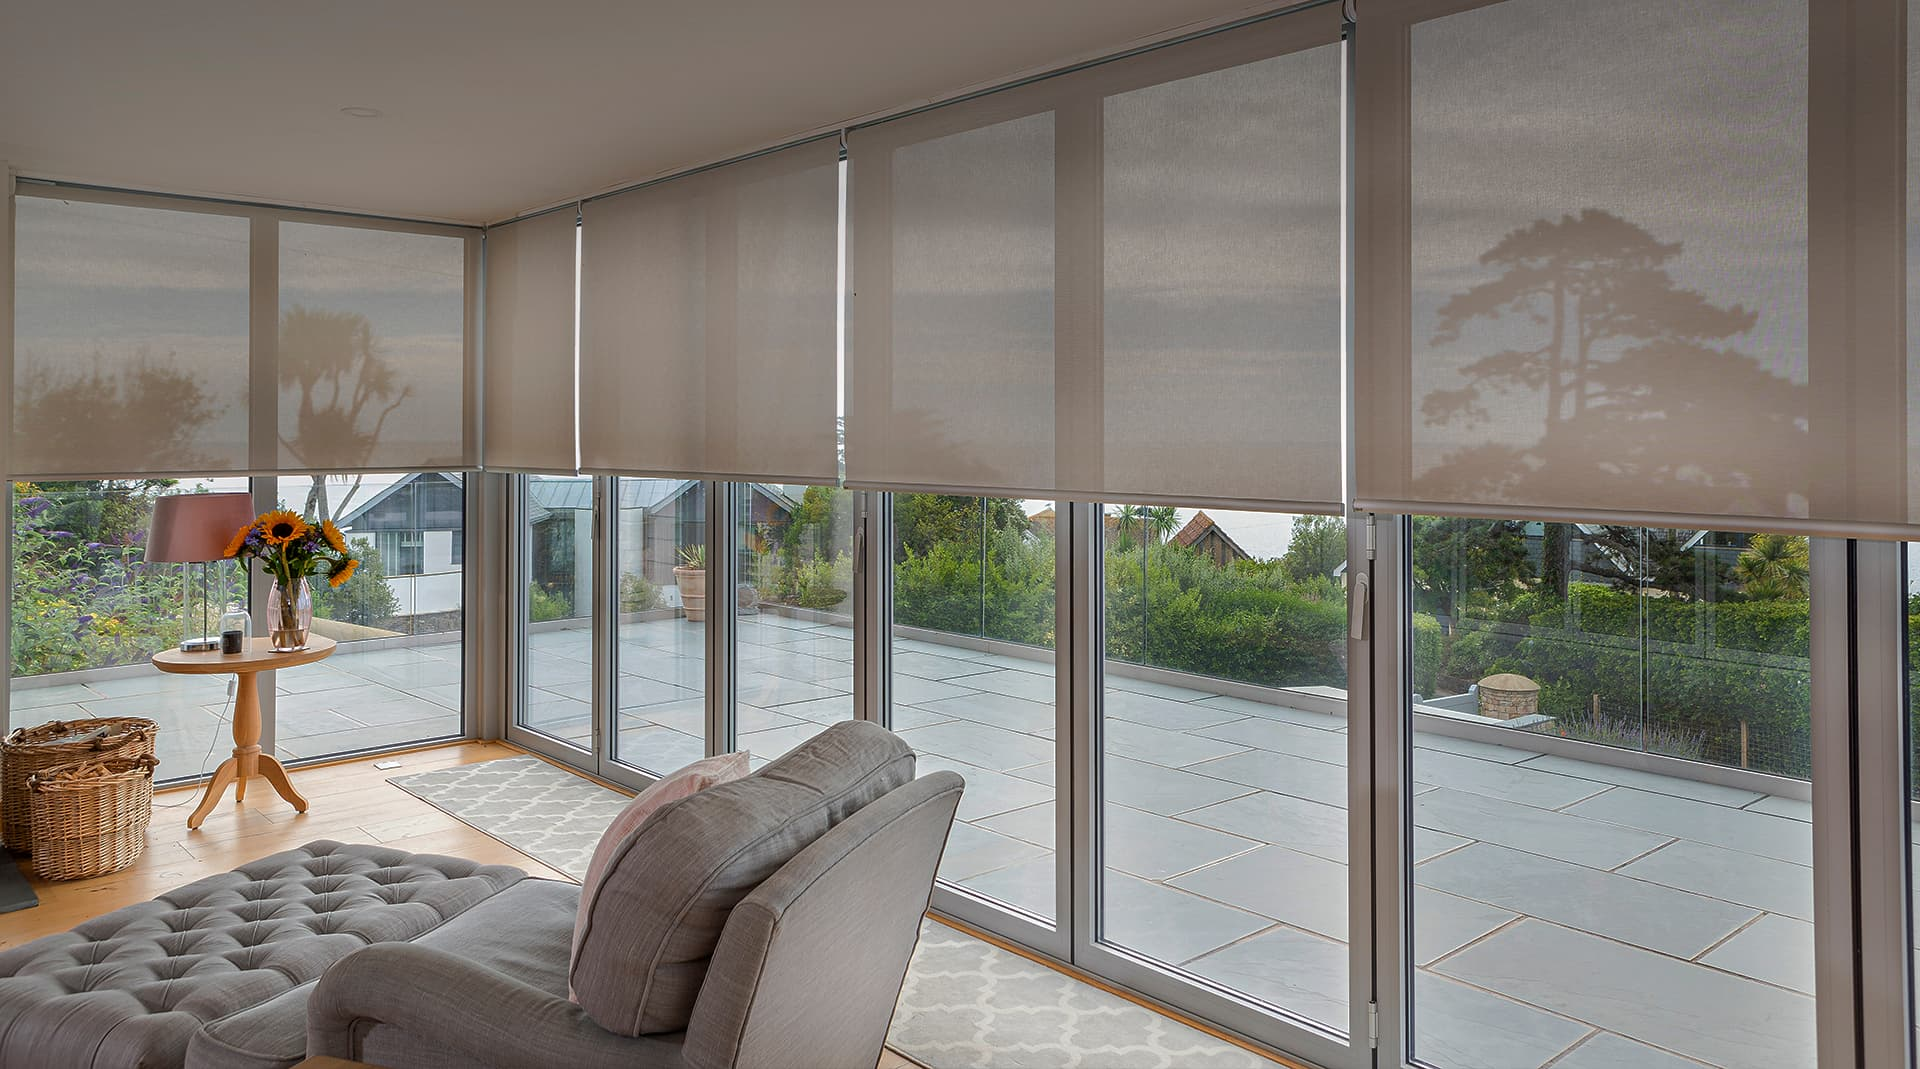 Hidden Wires- Tina Loveland - ULTRA Smart Roller Blinds on Bi-fold Doors